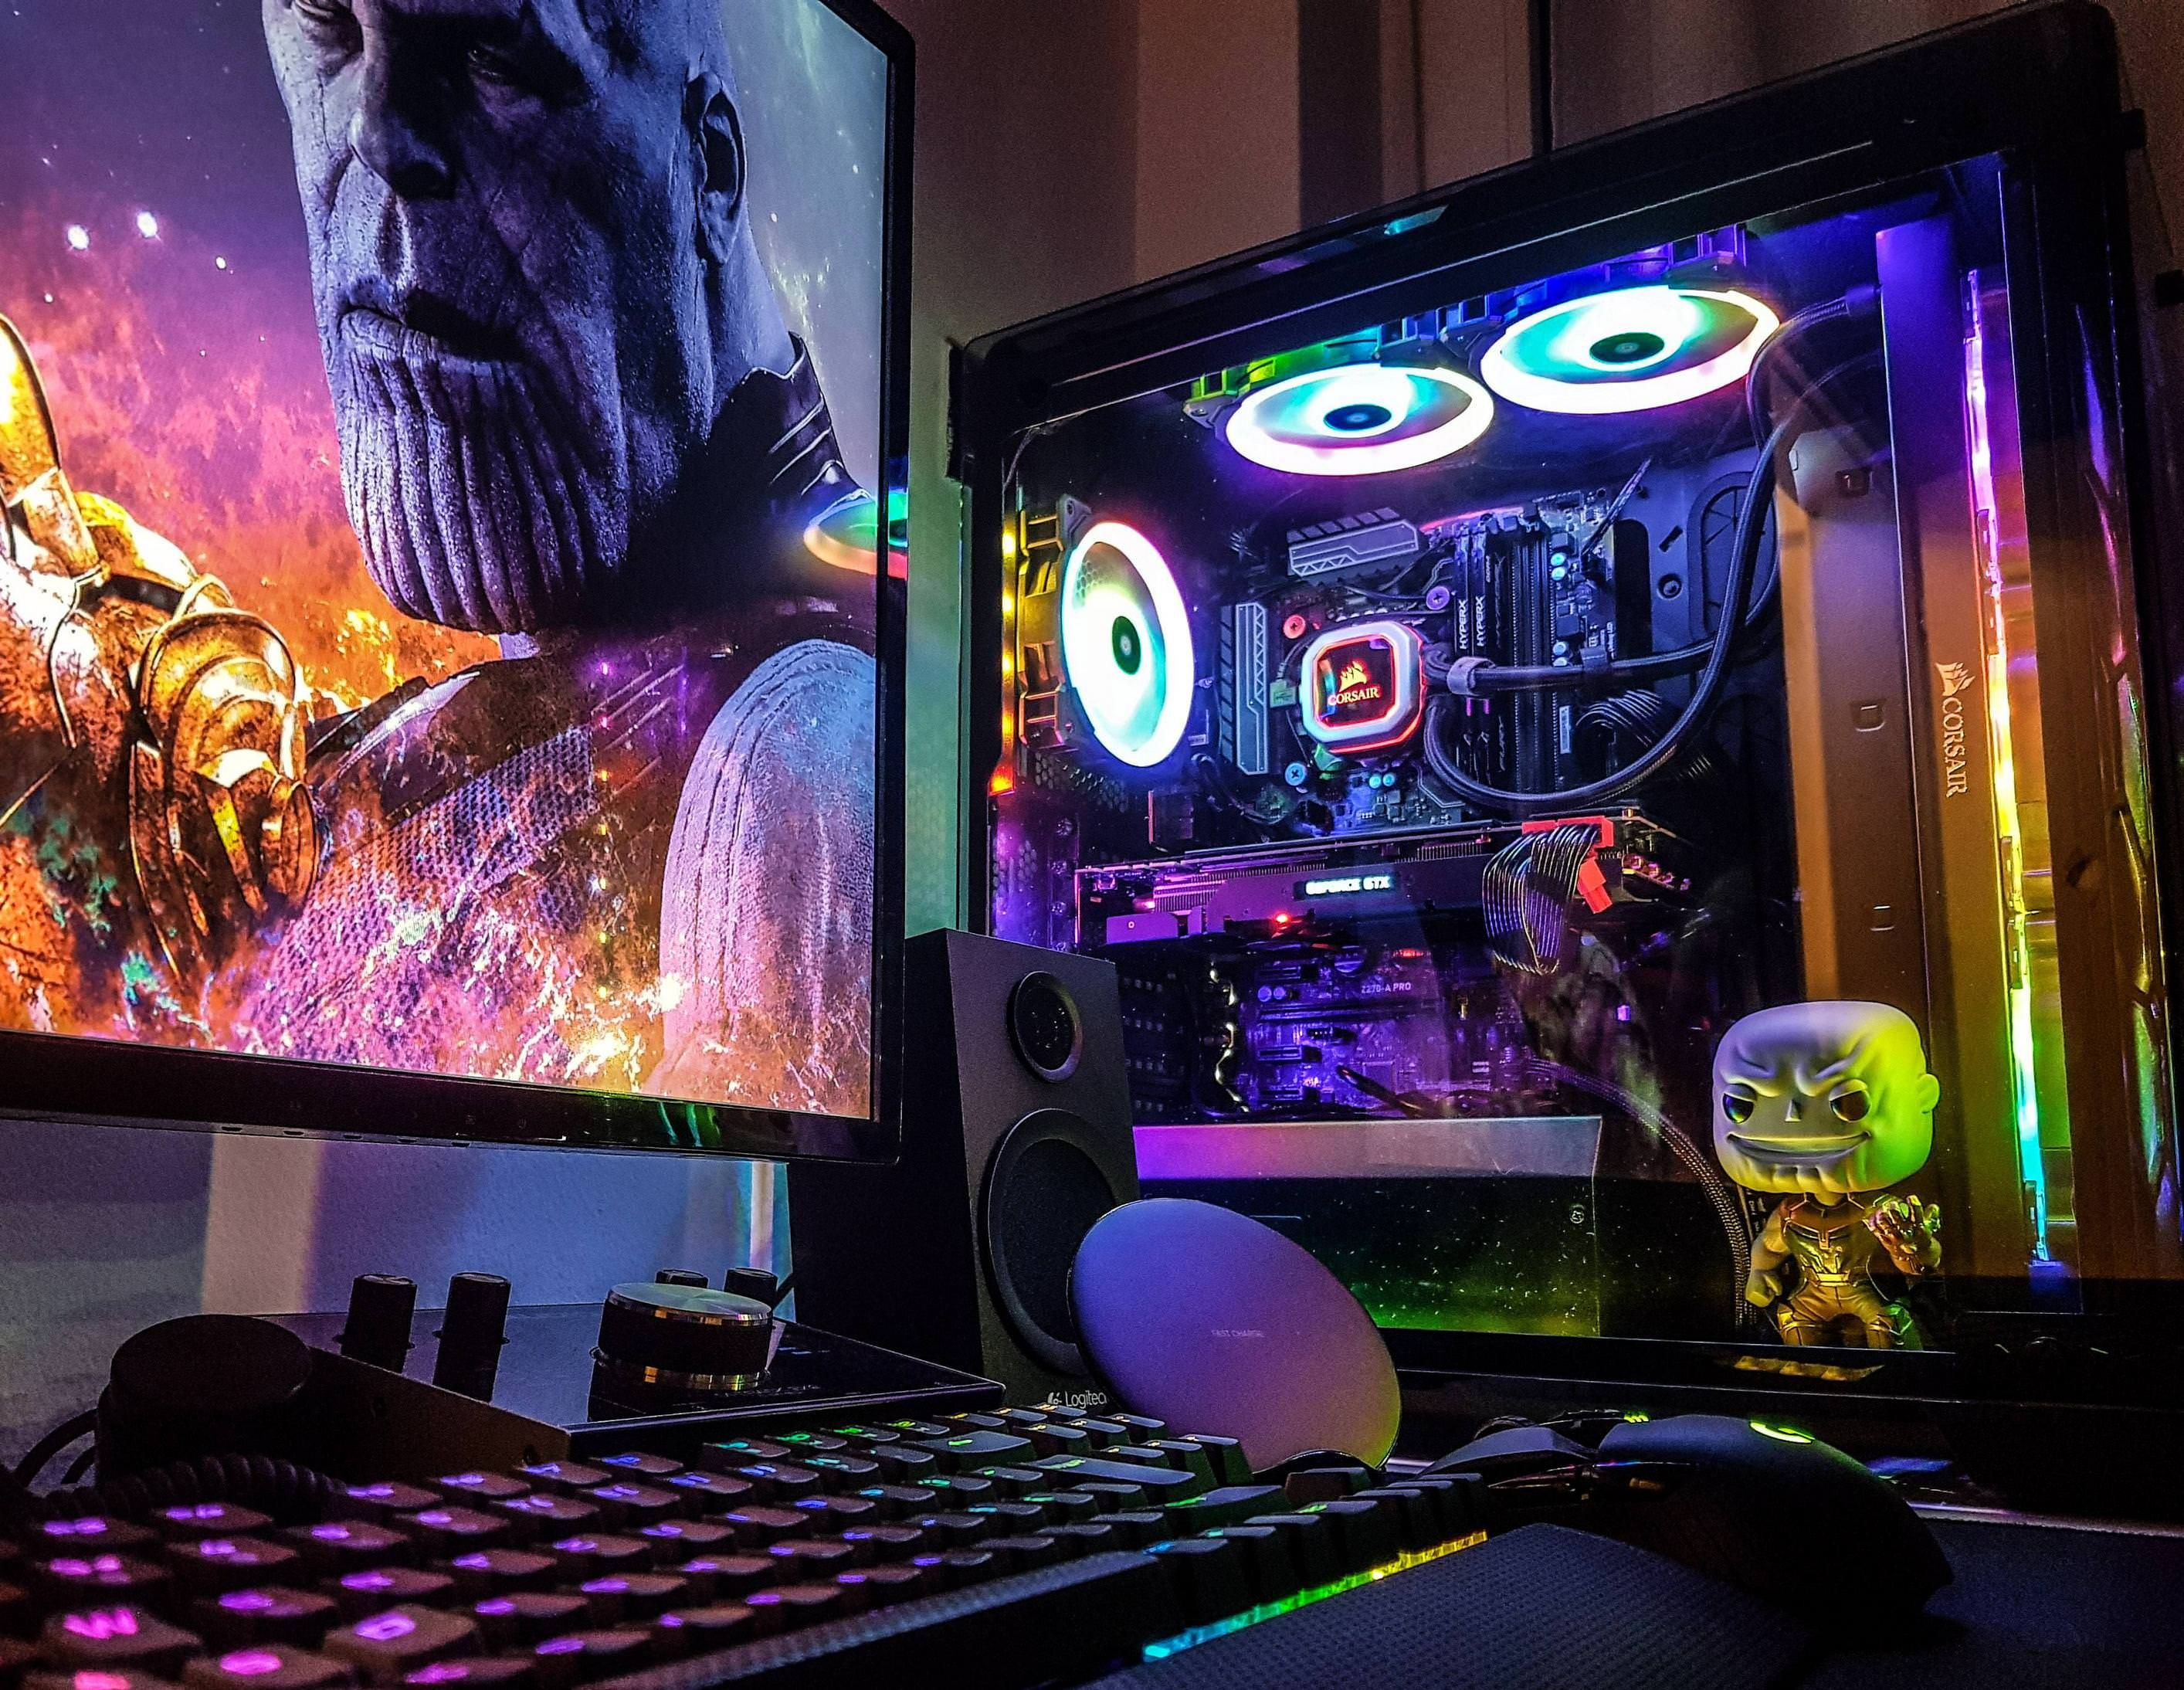 Thanos Computer Setup Extremely Well Done Click For More Pics And Specs Battlestation Battlestations Gami Computer Setup Battlestation Pc Gaming Setup